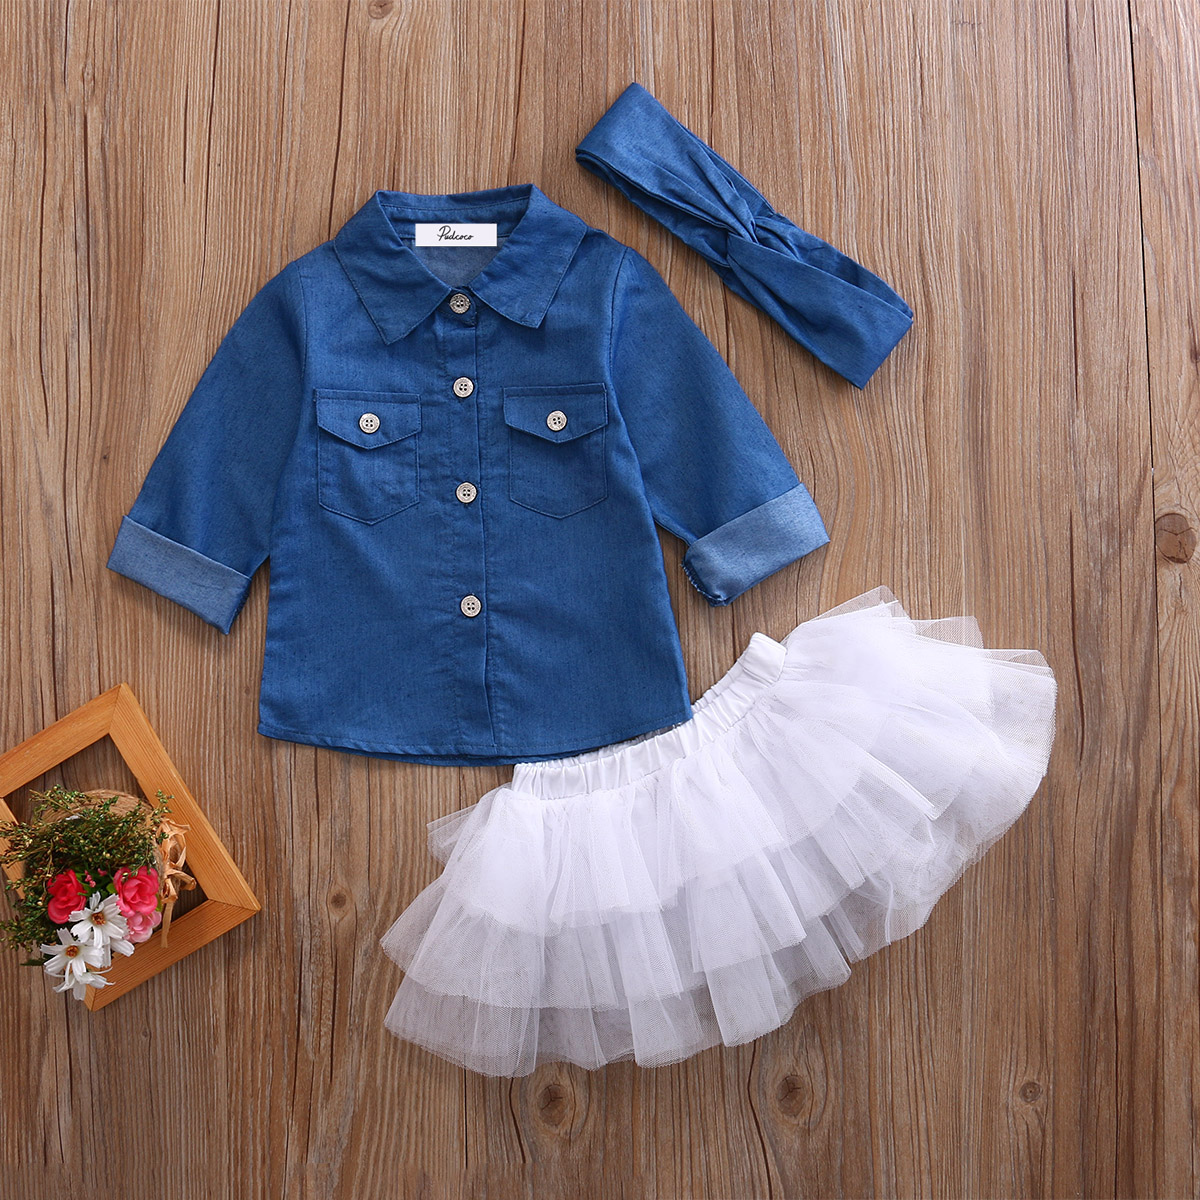 Kids Baby Girls Denim Tops T shirt+White Tutu Skirts+Headband 3pcs Outfits Clothes Set Summer Long Sleeve Children Clothing Sets baby girls clothes suit denim jacket t shirt jeans kids 3pcs suits baby girls clothes 2017 toddler baby outfits clothing sets